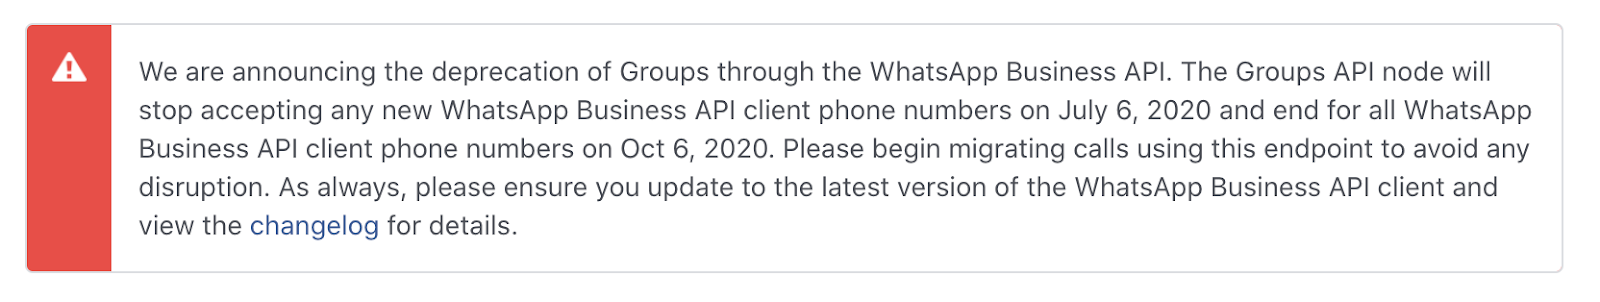 WhatsApp Structured message templates